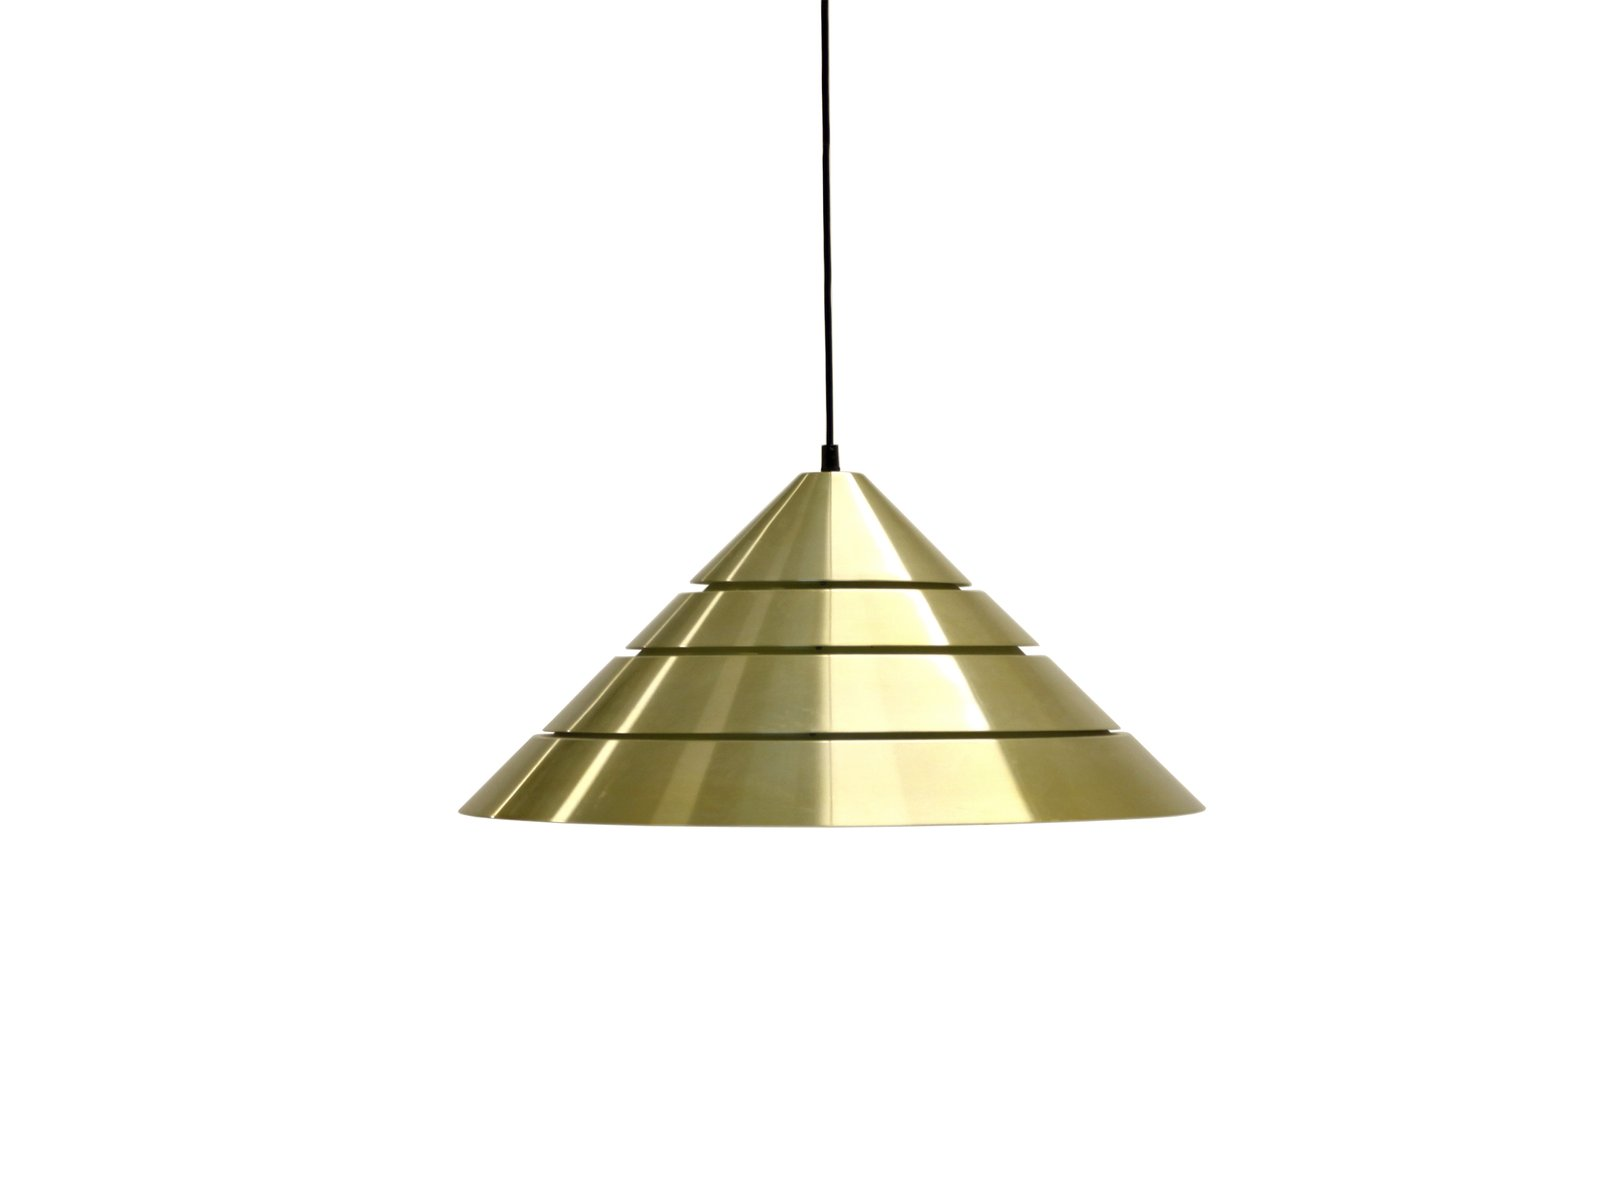 lovelights pewter lights inch image lighting in cone uk at small pendant co brooklyn industville ceiling